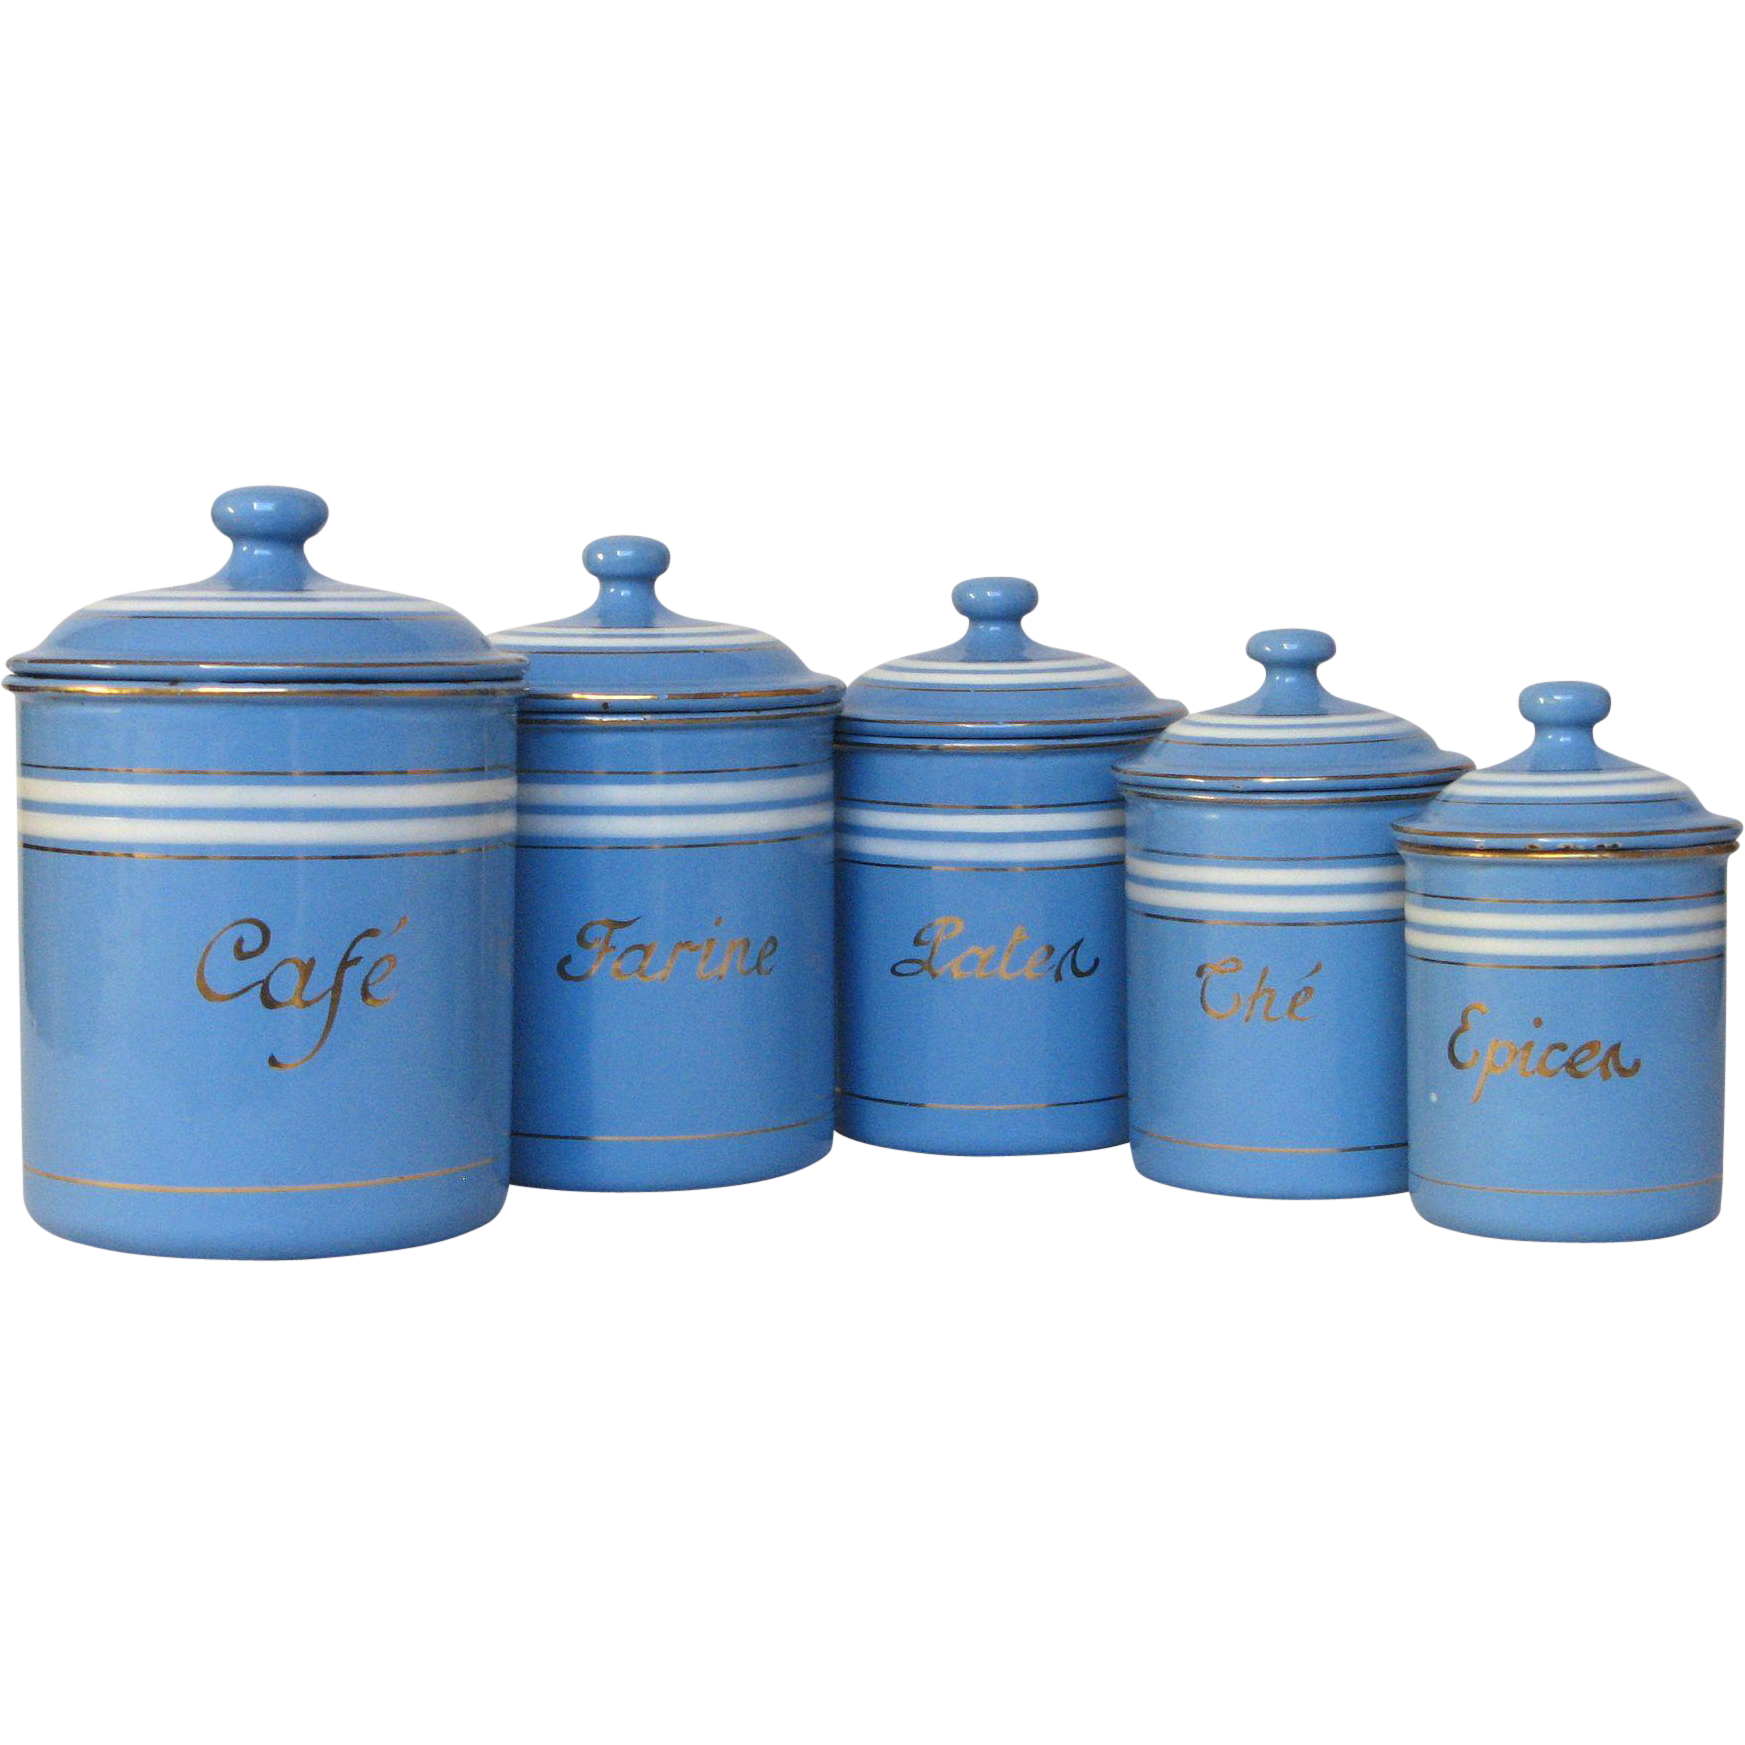 Blue kitchen canister 28 images set of 4 vintage blue glass canisters royal blue white - Blue glass kitchen canisters ...